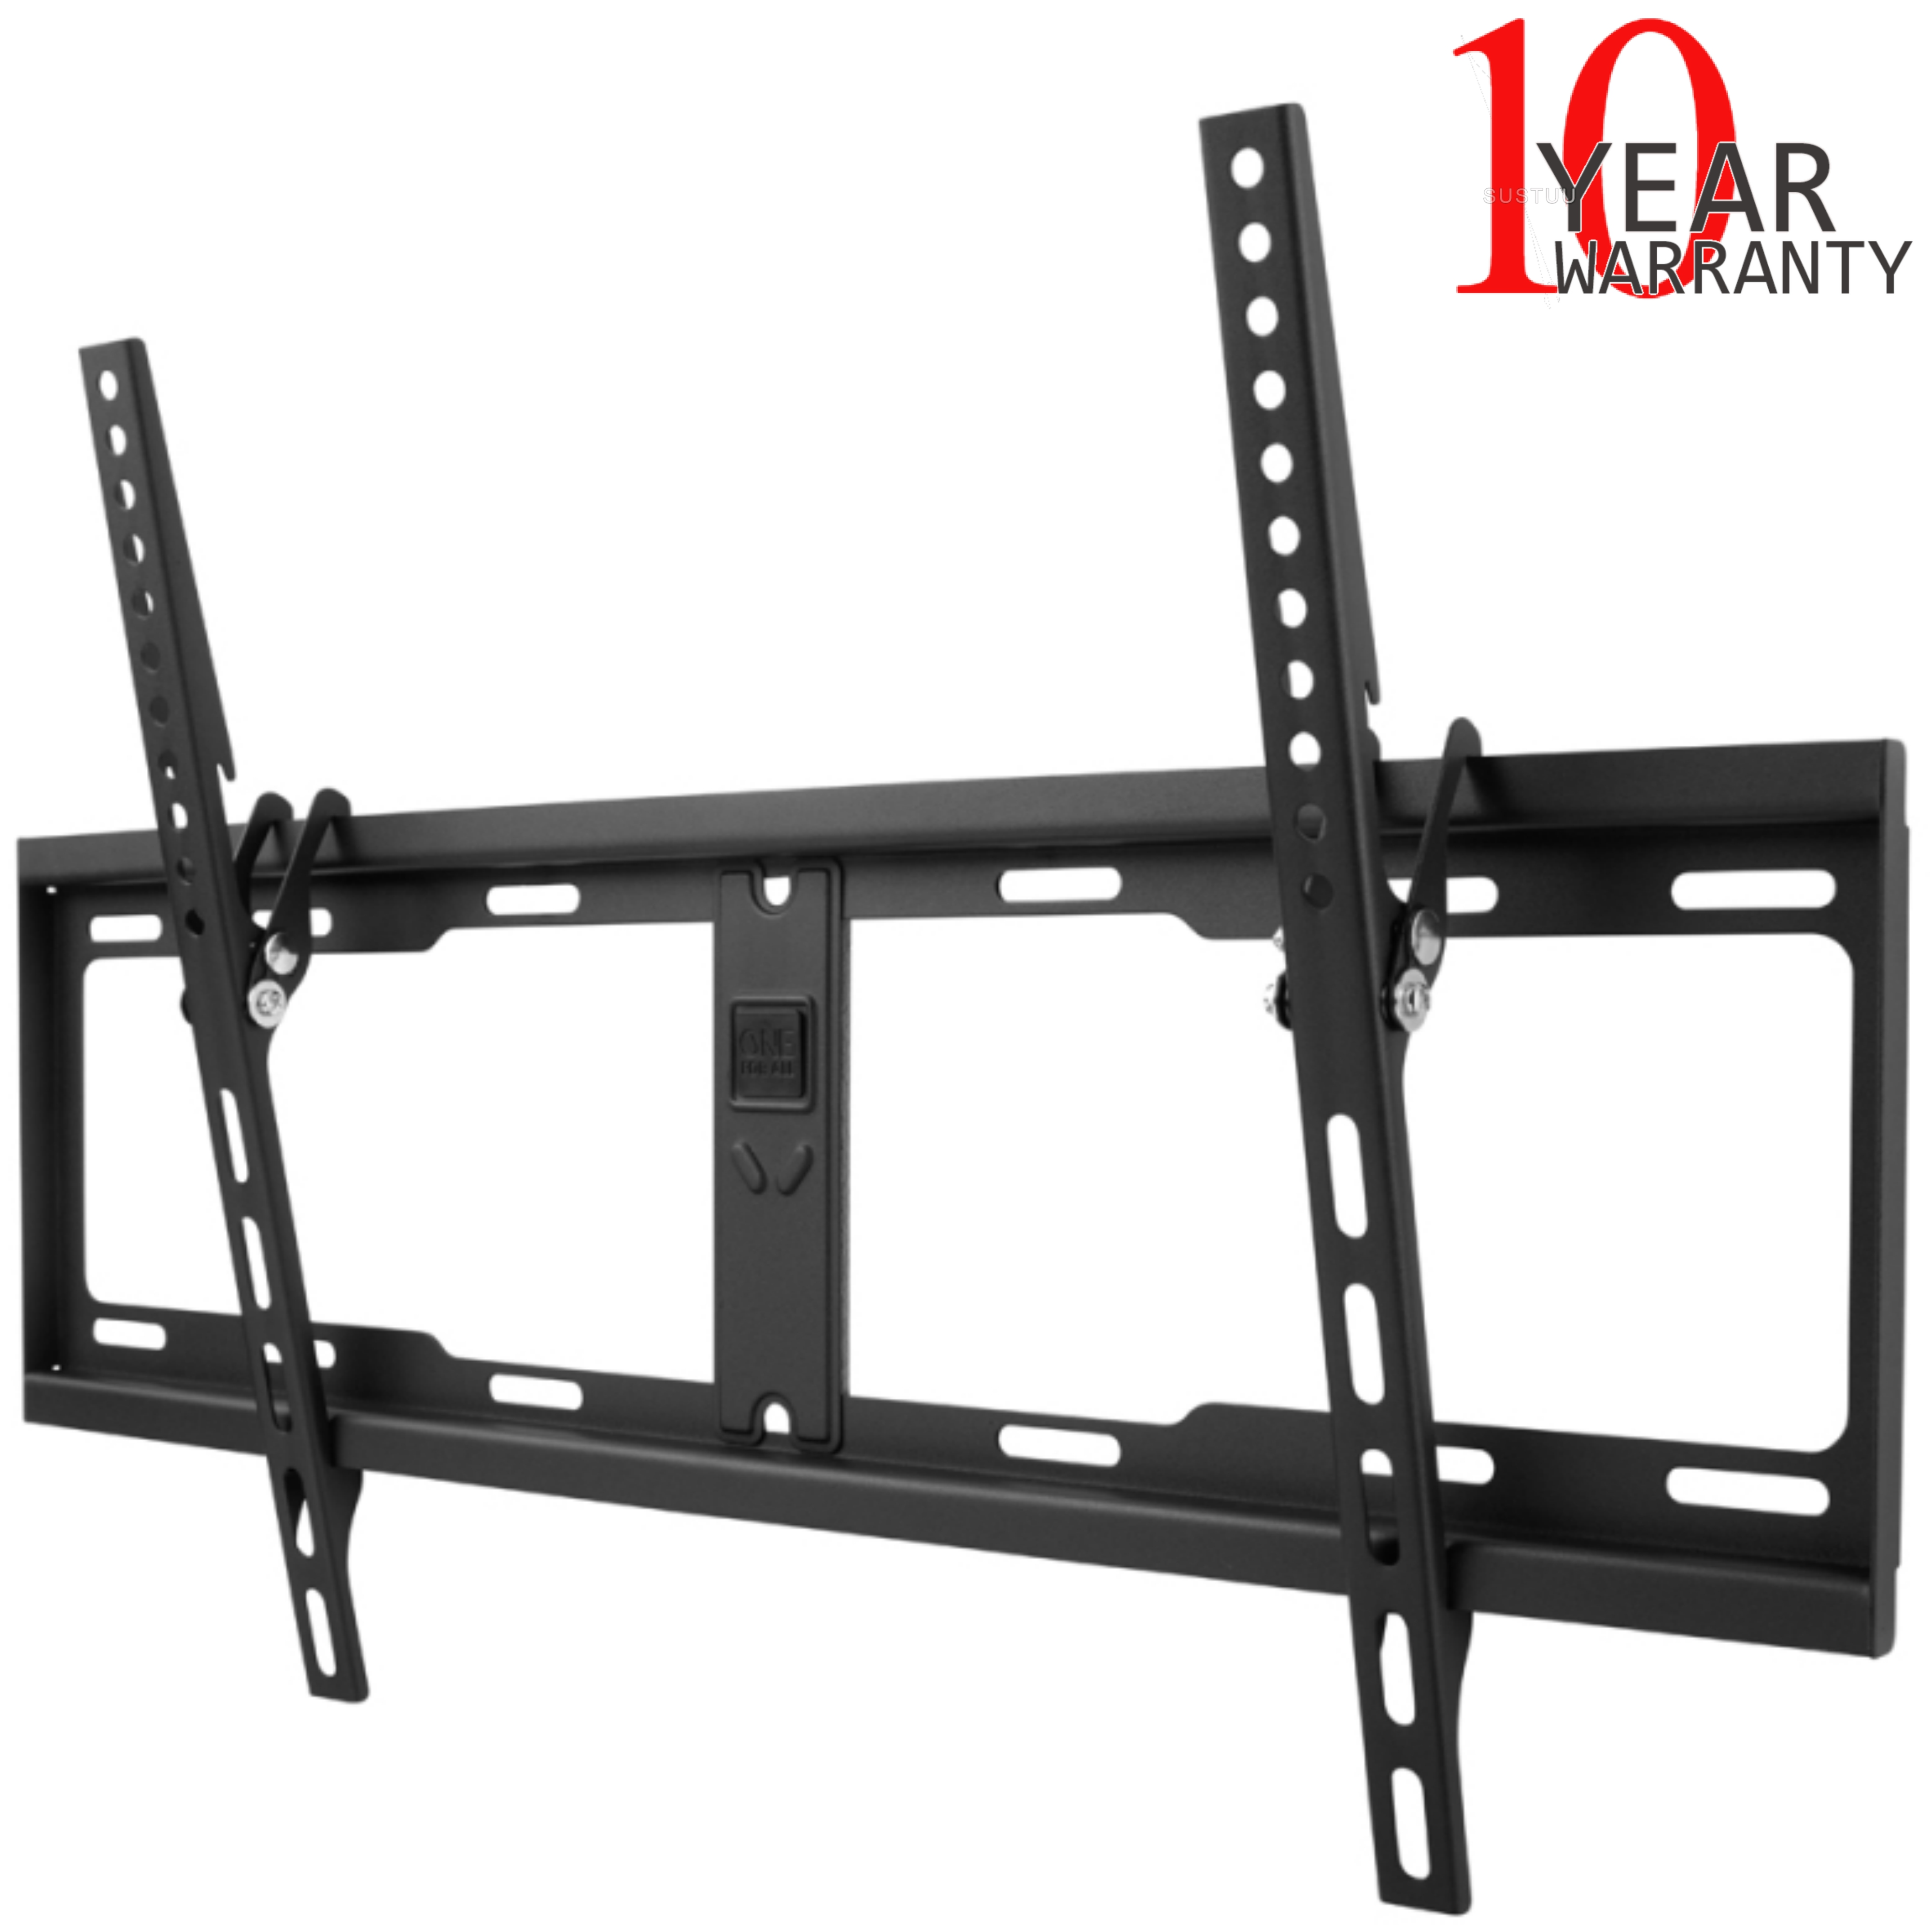 One For All Wall Mount for 32-84 inch TV | Tilt Solid Series | Vertical Angle | WM4621